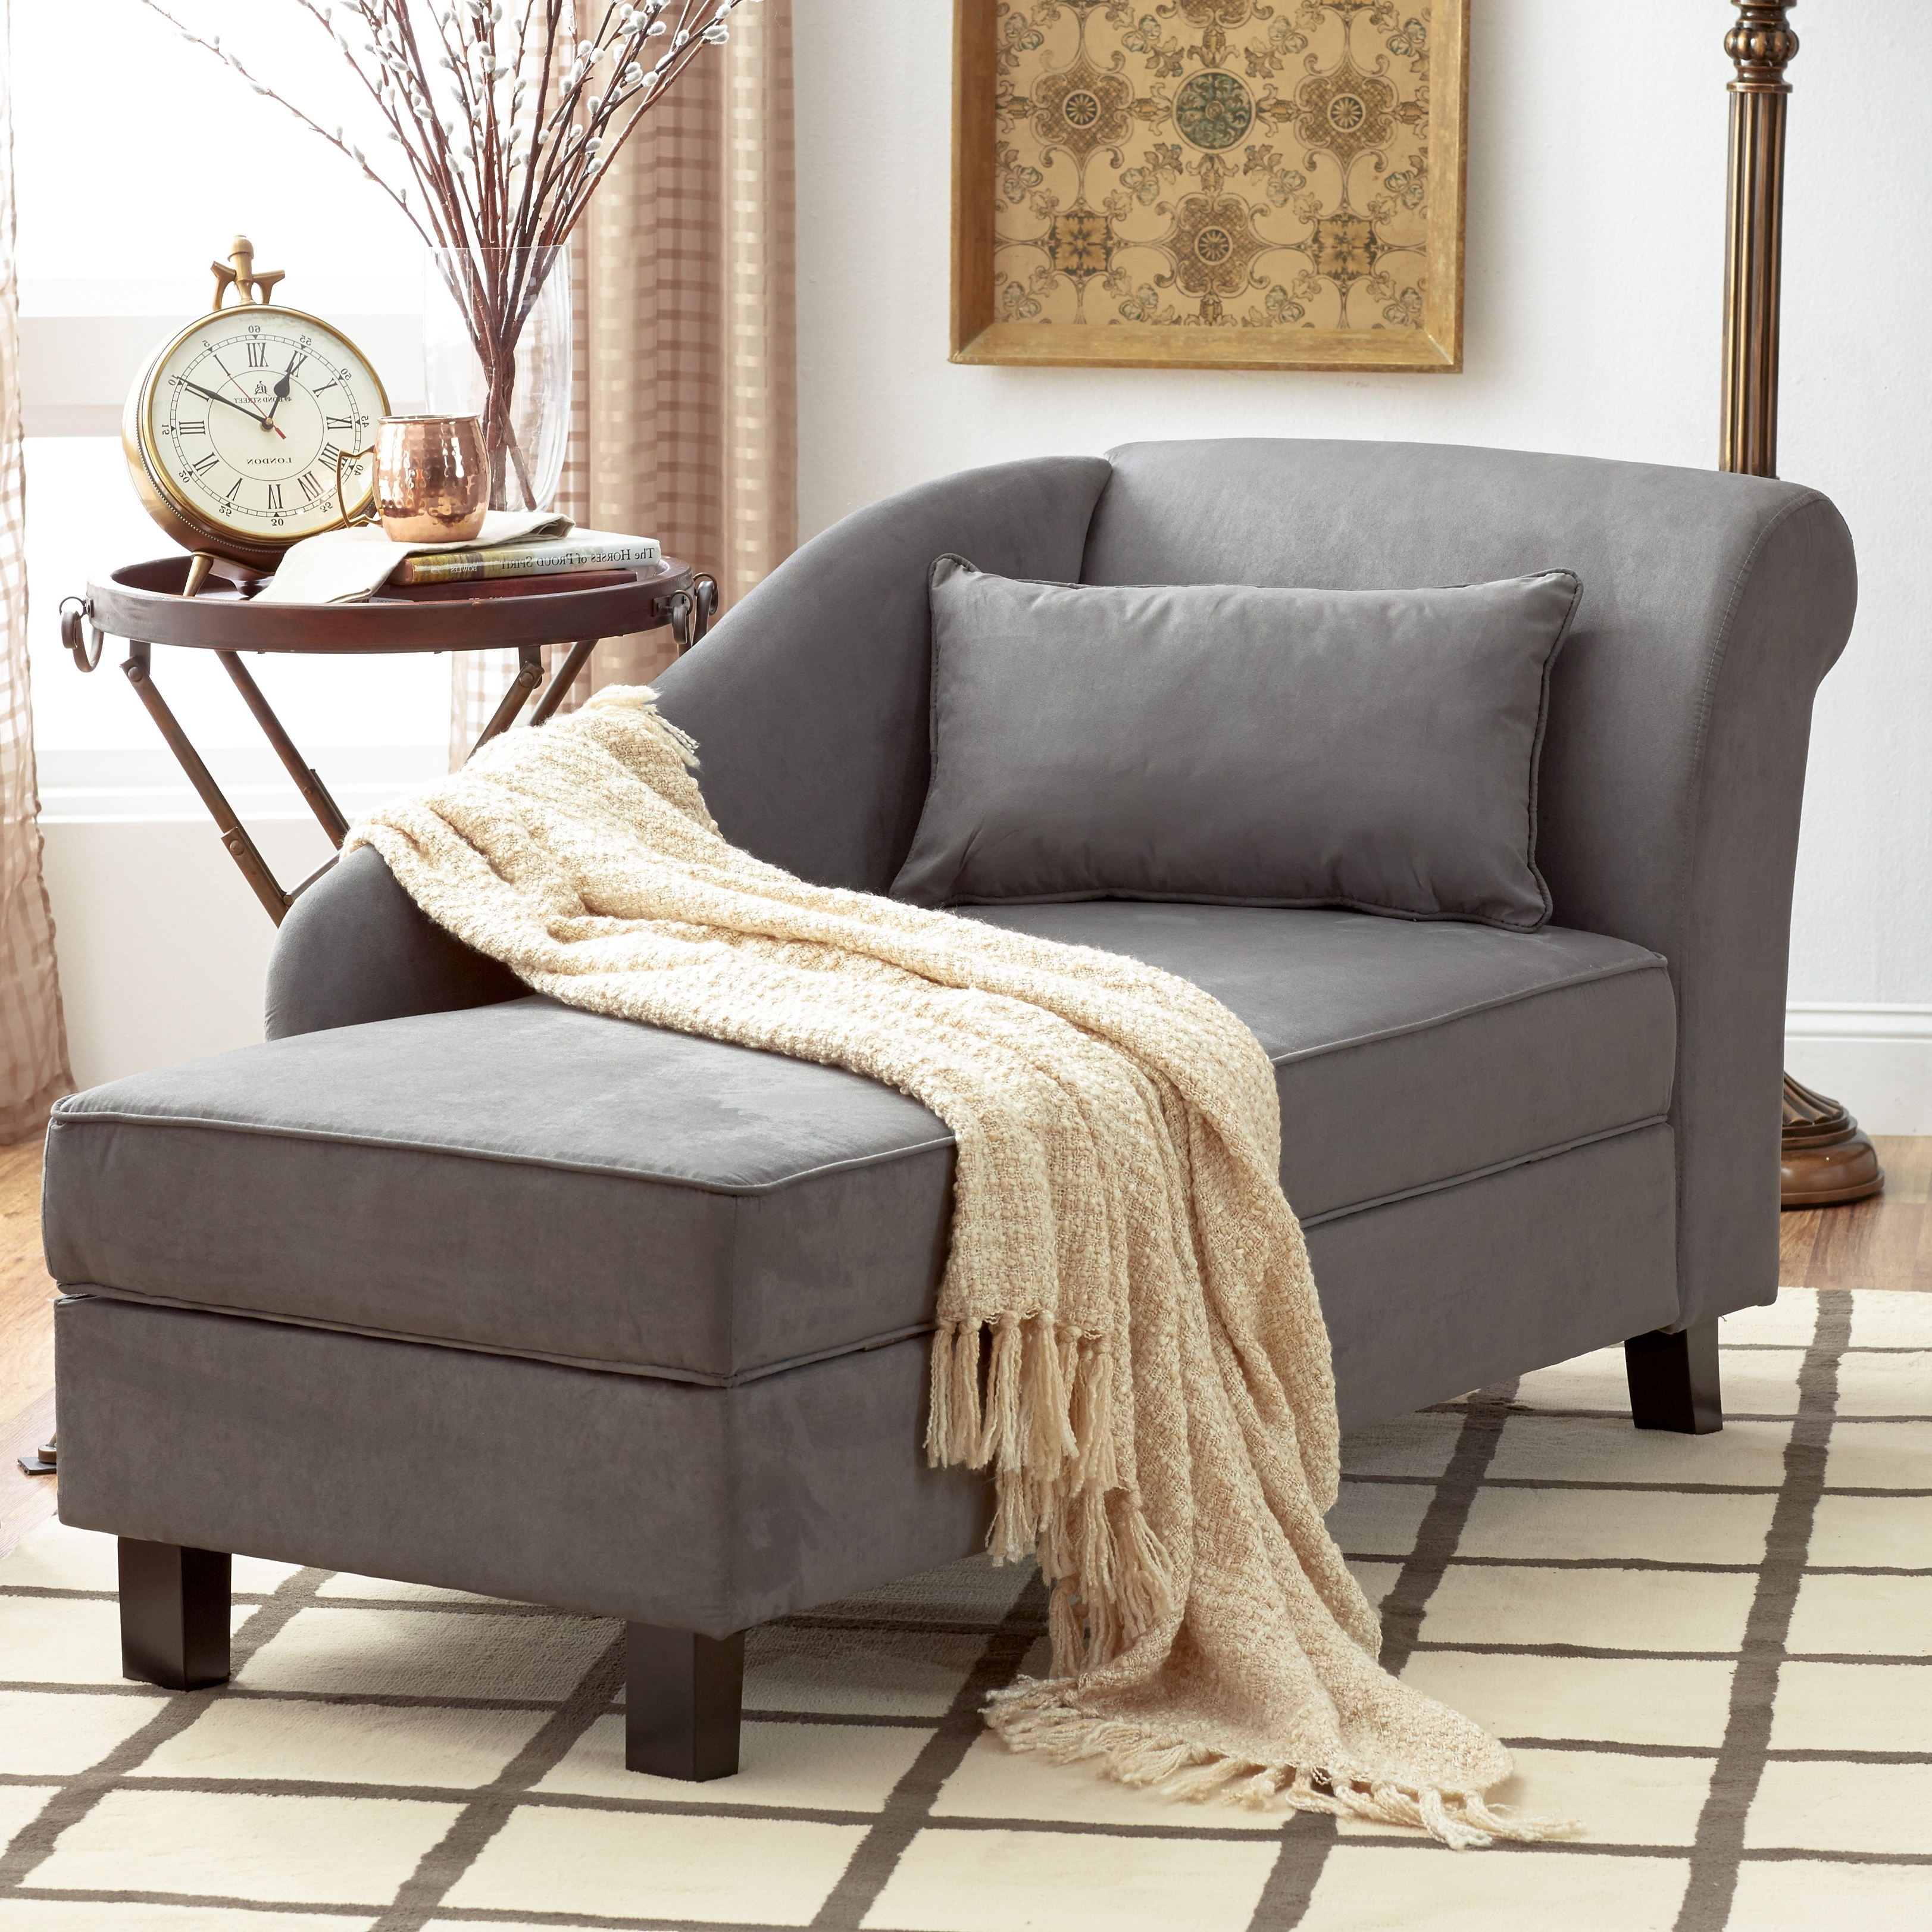 Lounge Chair Cushion Storage • Lounge Chairs Ideas Intended For Well Liked Chaise Lounge Chairs With Storage (View 9 of 15)